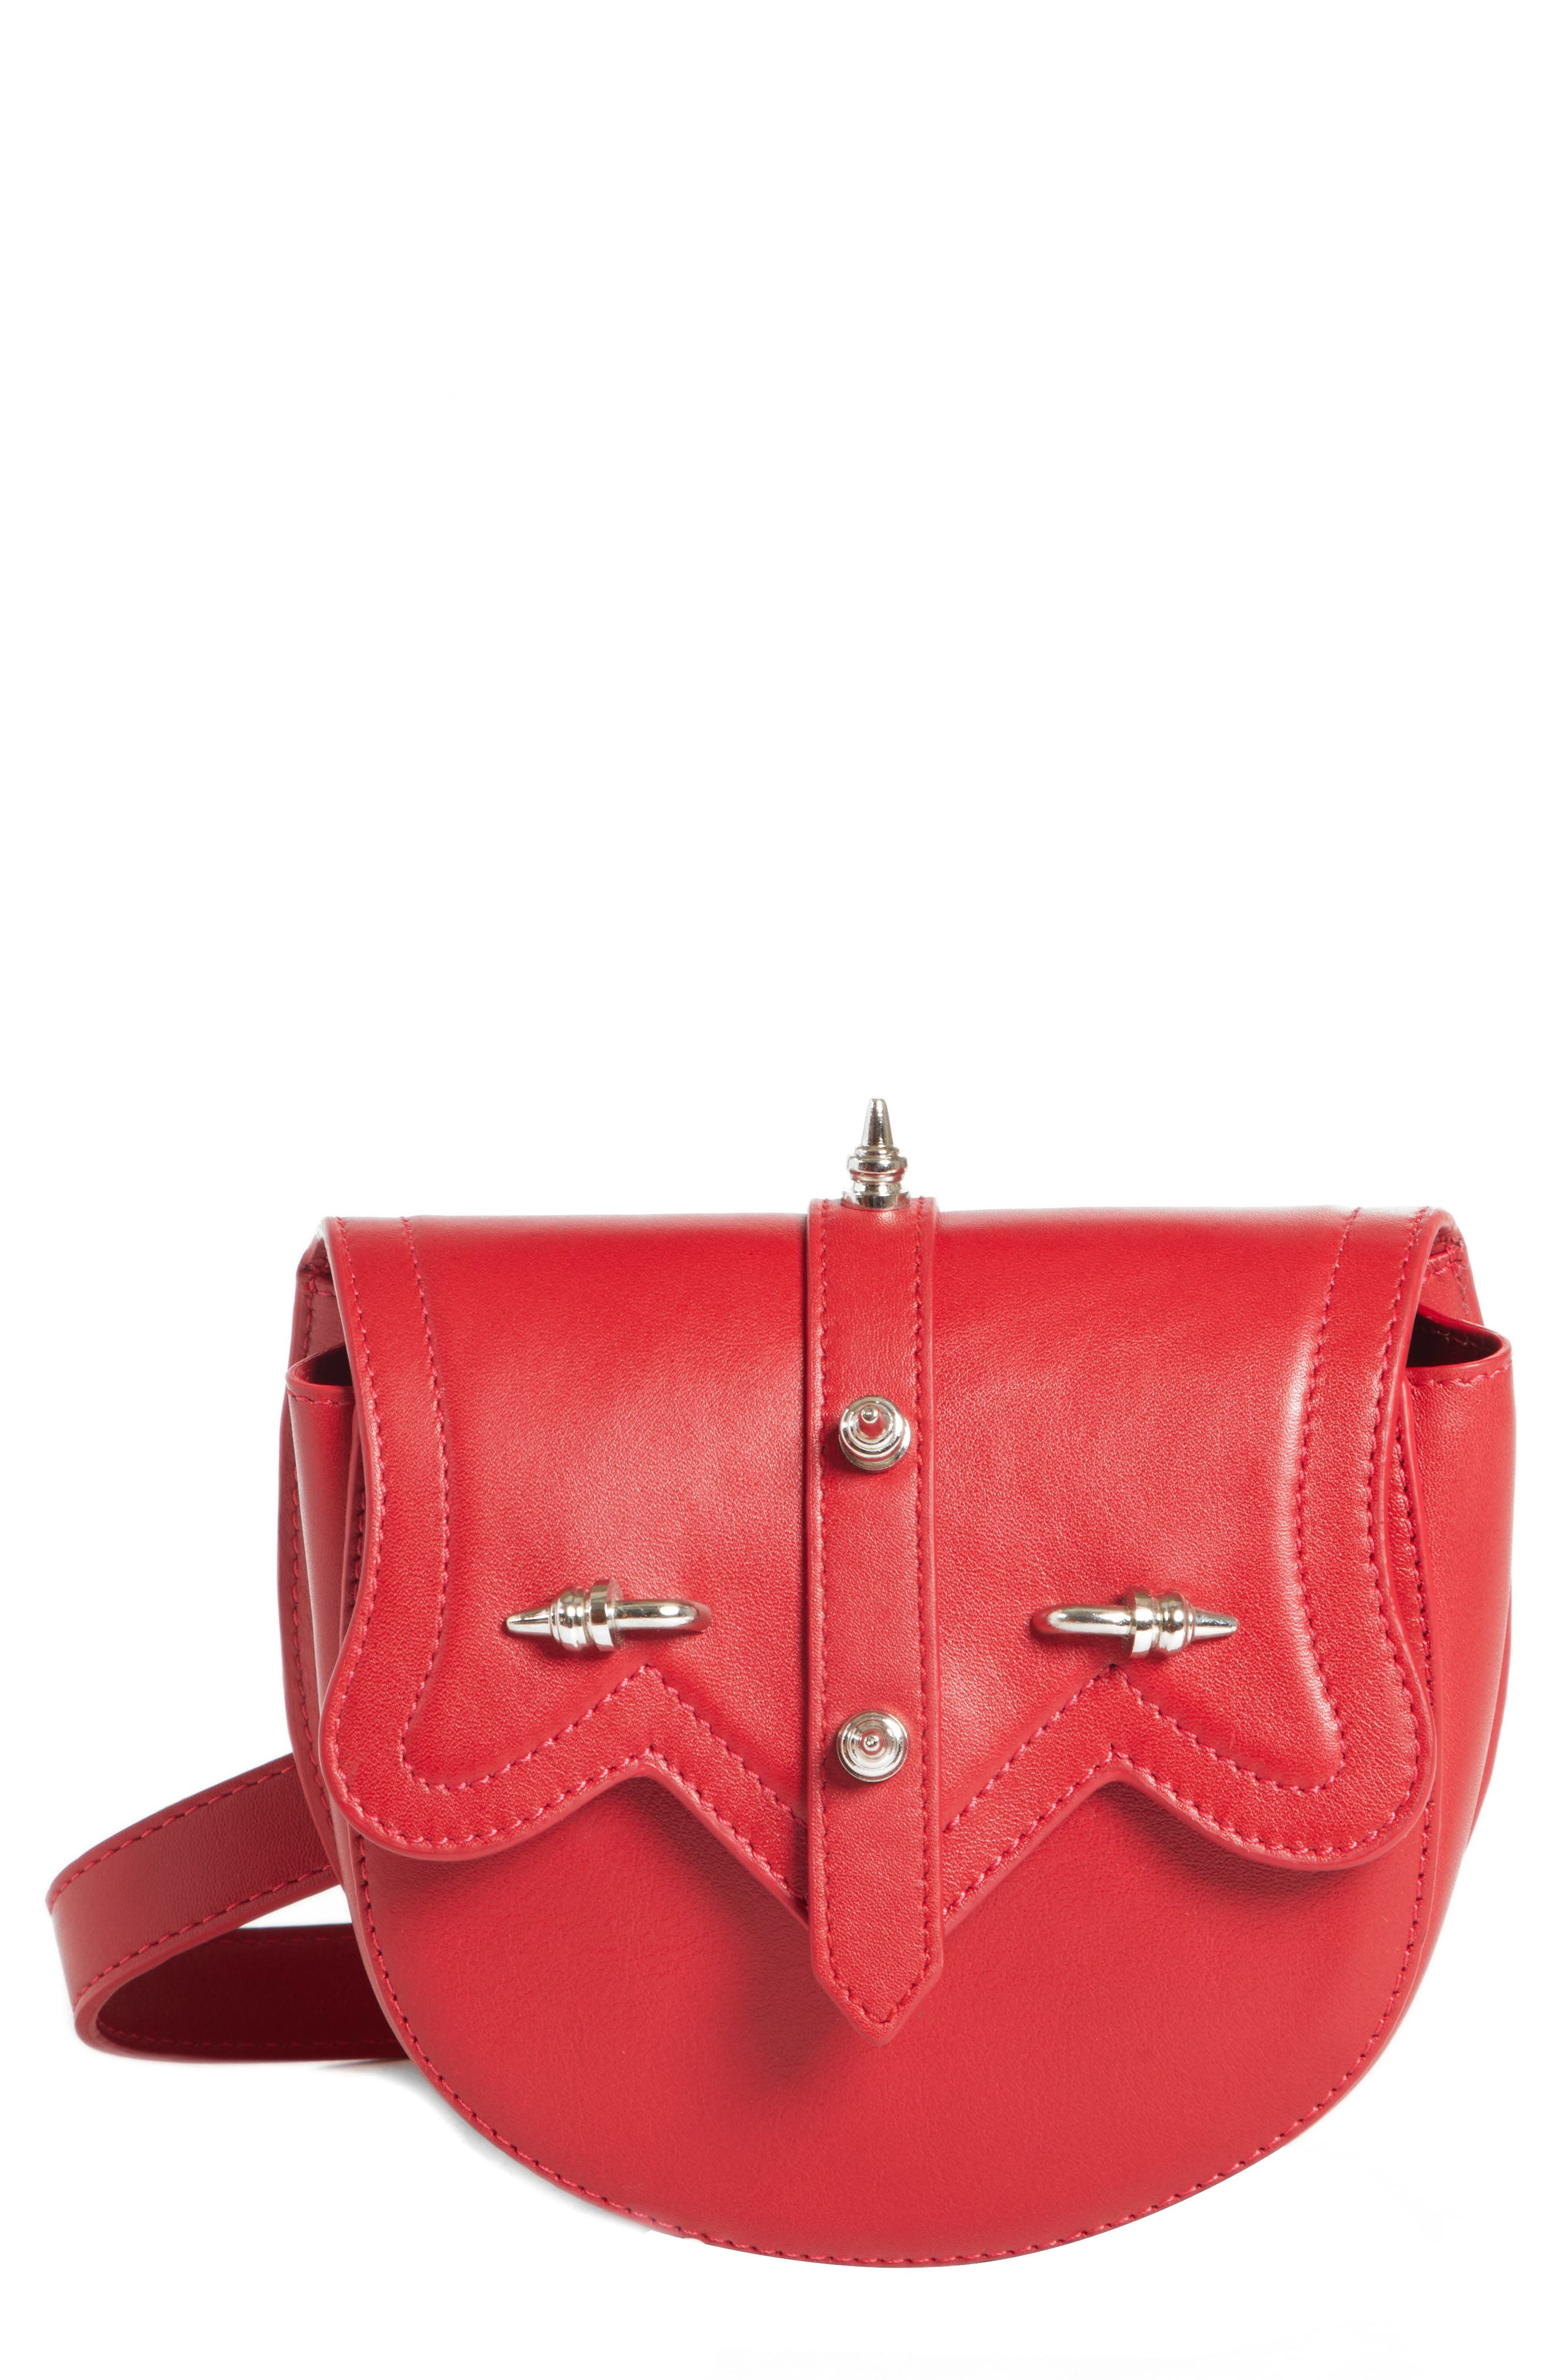 OKHTEIN Dome Belt Bag - Red in Red X Silver